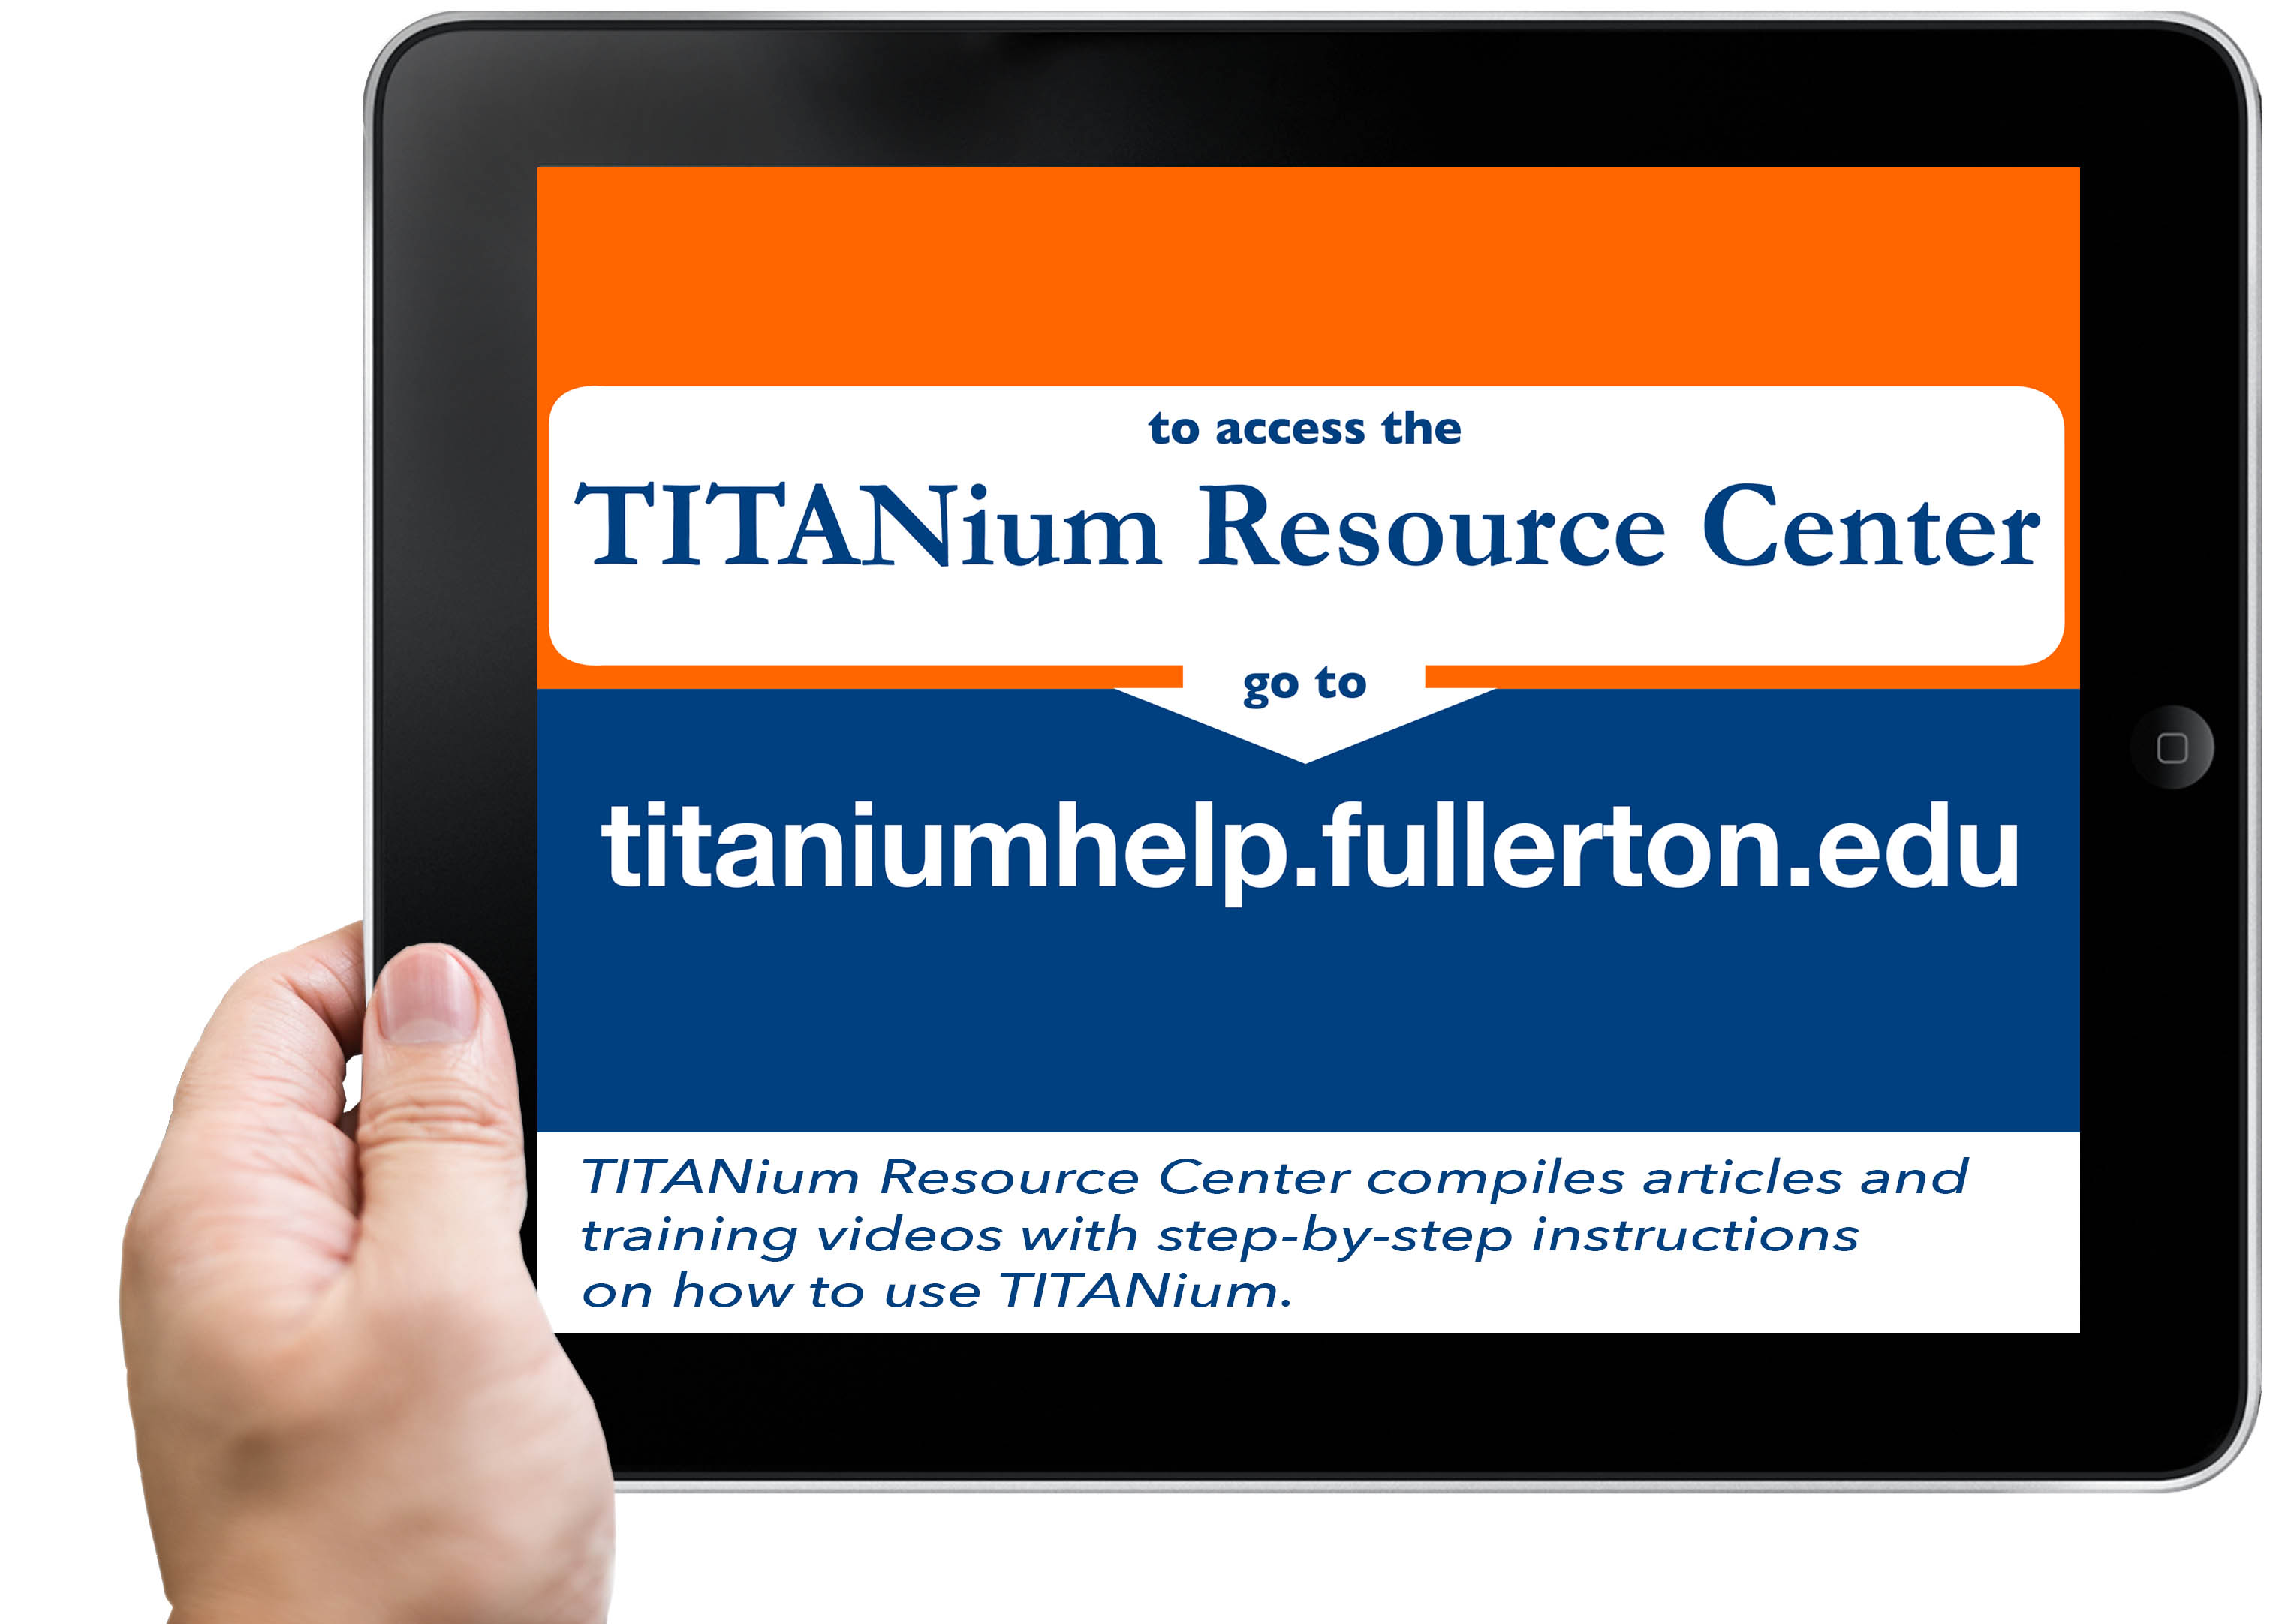 TITANium Resource Center